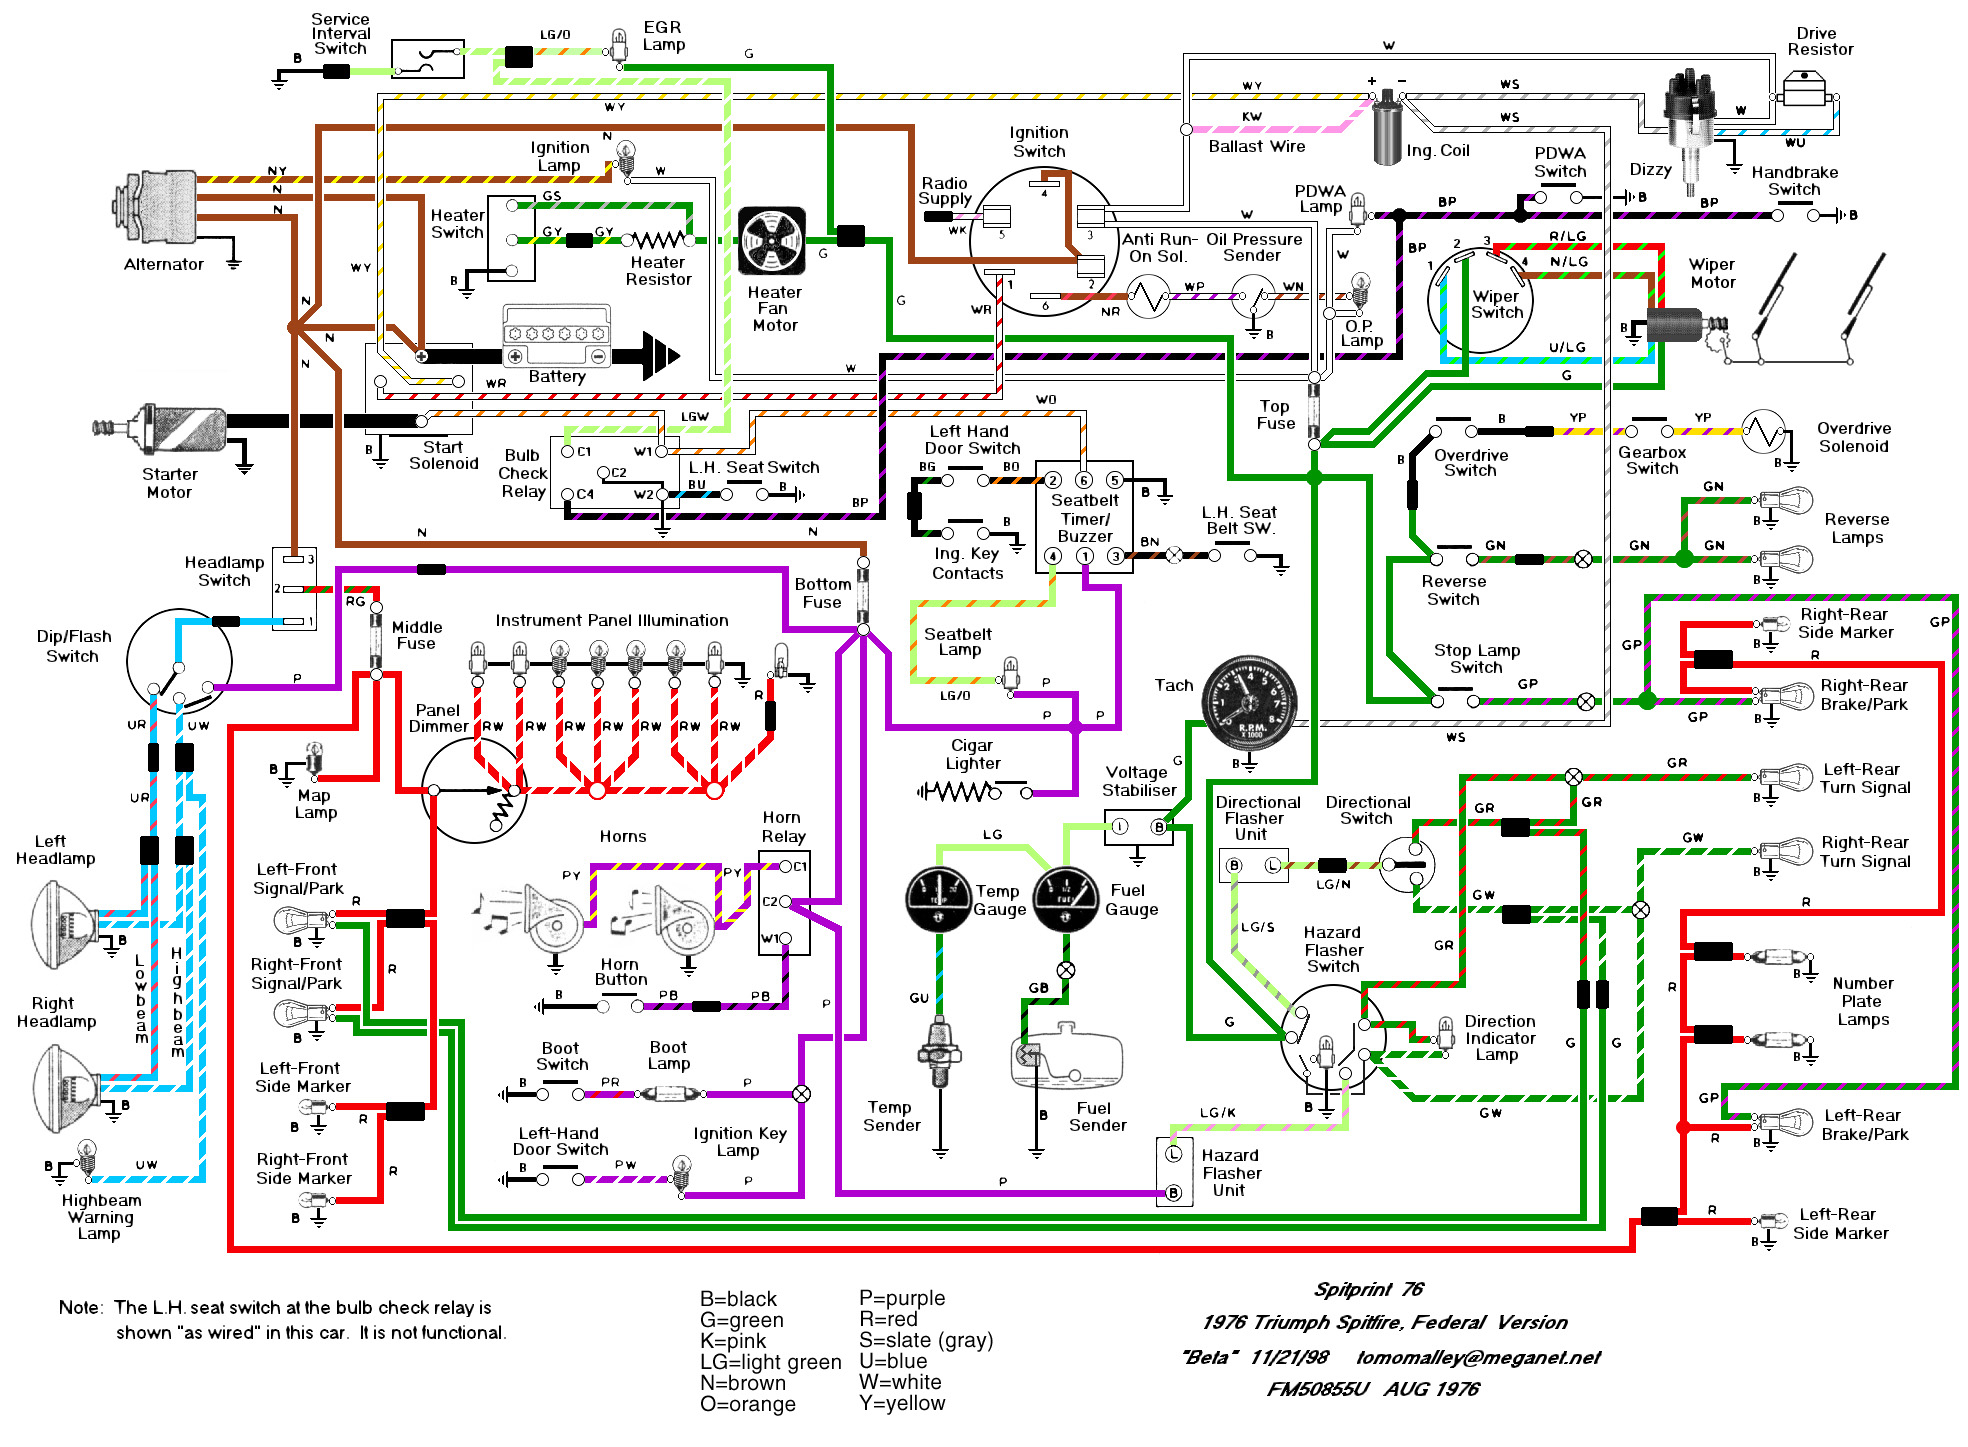 76diagram wiring schematics and diagrams triumph spitfire, gt6, herald triumph spitfire wiring harness at gsmx.co